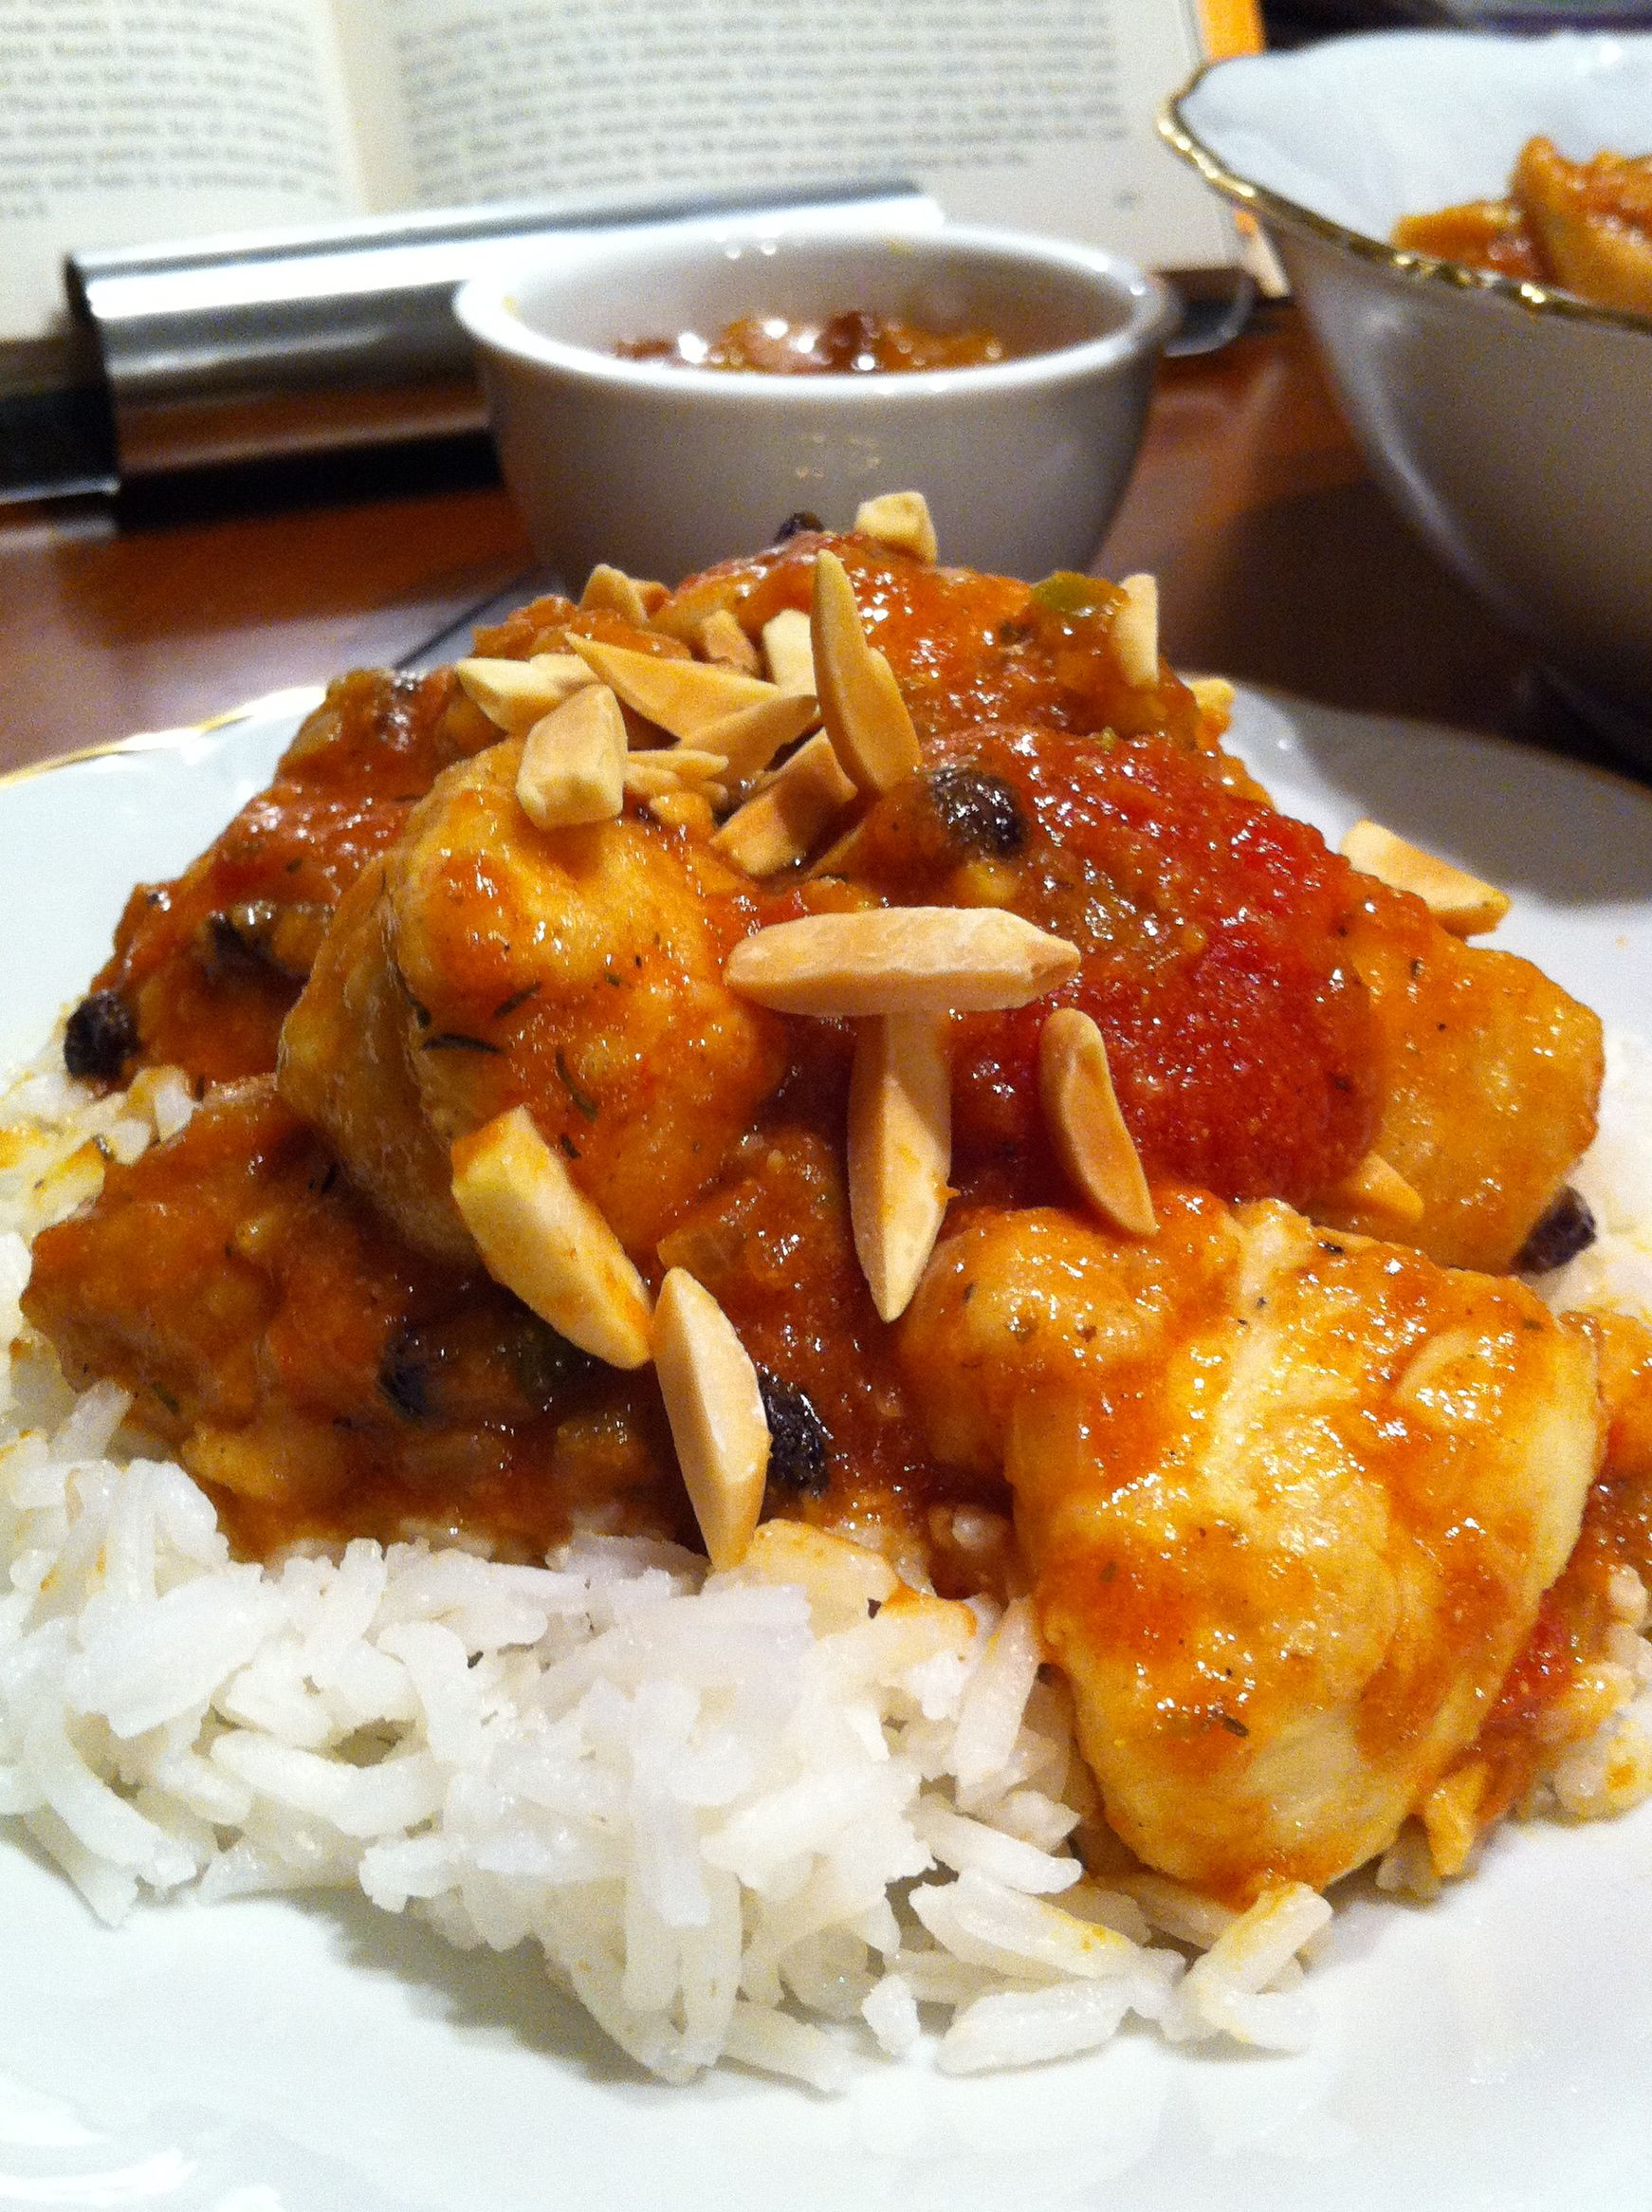 Country captain chicken curry american heritage cooking